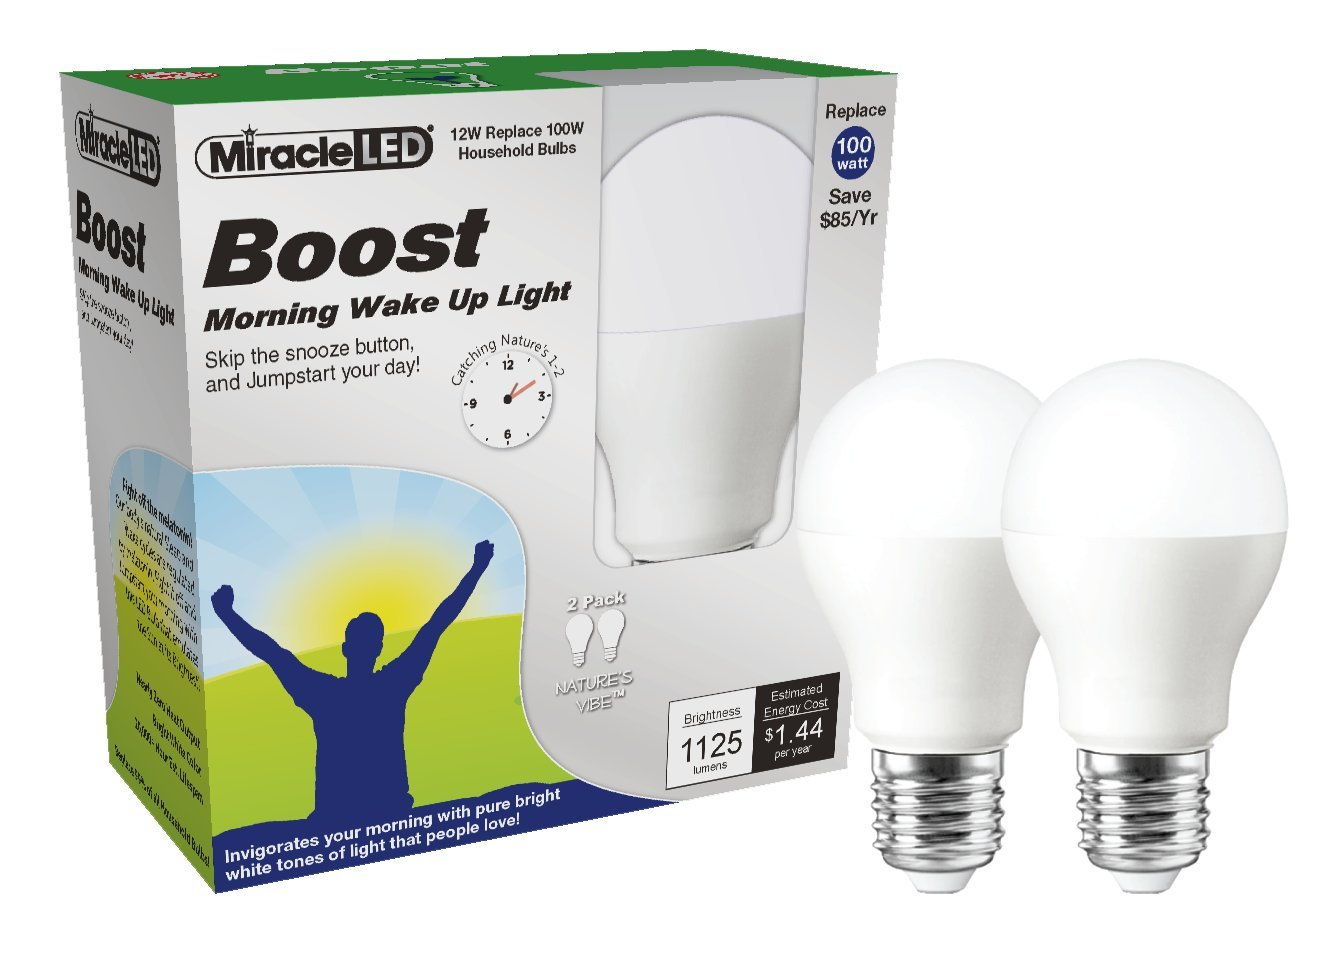 Miracle LED Boost Morning Wake Up Light, Replaces 100 Watt Bulbs, Natural Energy Light, 2-Pack